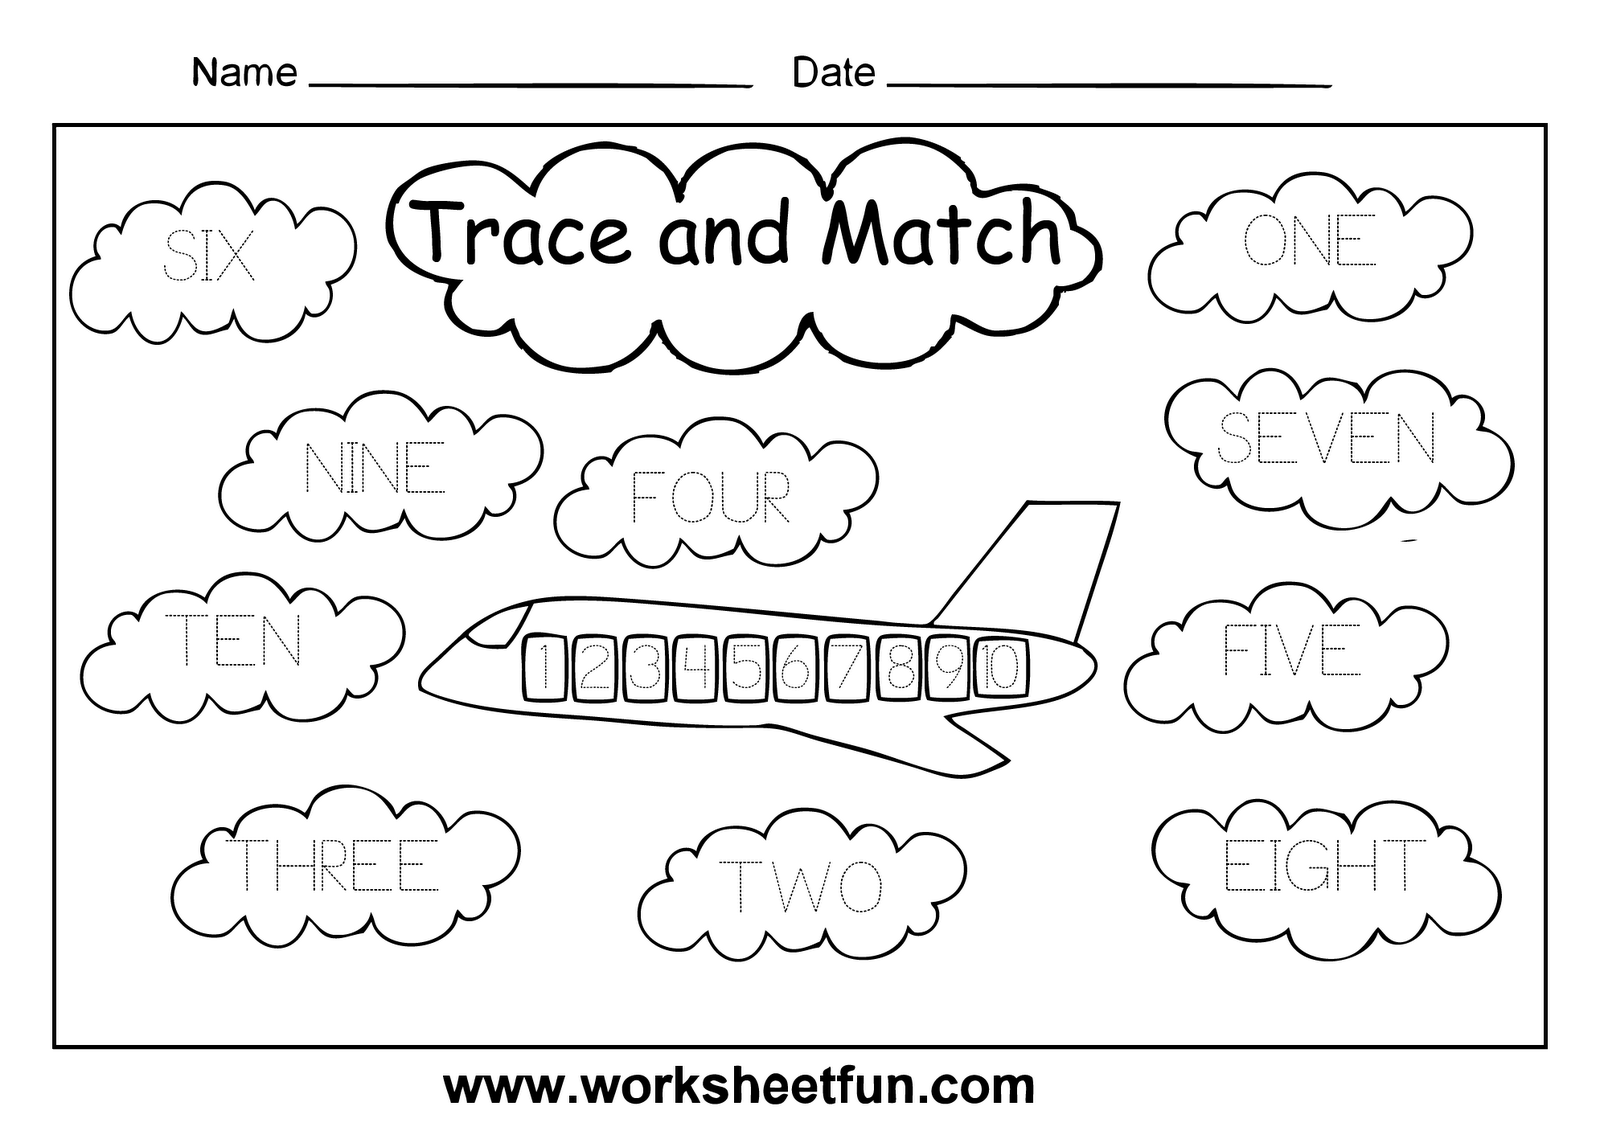 Weirdmailus  Nice Worksheet Numbers    Reocurent With Heavenly Maths For Grade  Worksheet Besides Making Inferences Practice Worksheets Furthermore Esl Halloween Worksheet With Breathtaking Kindergarten Math Worksheets Counting Also Associative Property Of Multiplication Worksheets Th Grade In Addition Synonyms Super Teacher Worksheets And Math Algebraic Expressions Worksheets As Well As Ordinal Numbers Worksheet Grade  Additionally Worksheets On Dividing Decimals From Reocurentcom With Weirdmailus  Heavenly Worksheet Numbers    Reocurent With Breathtaking Maths For Grade  Worksheet Besides Making Inferences Practice Worksheets Furthermore Esl Halloween Worksheet And Nice Kindergarten Math Worksheets Counting Also Associative Property Of Multiplication Worksheets Th Grade In Addition Synonyms Super Teacher Worksheets From Reocurentcom